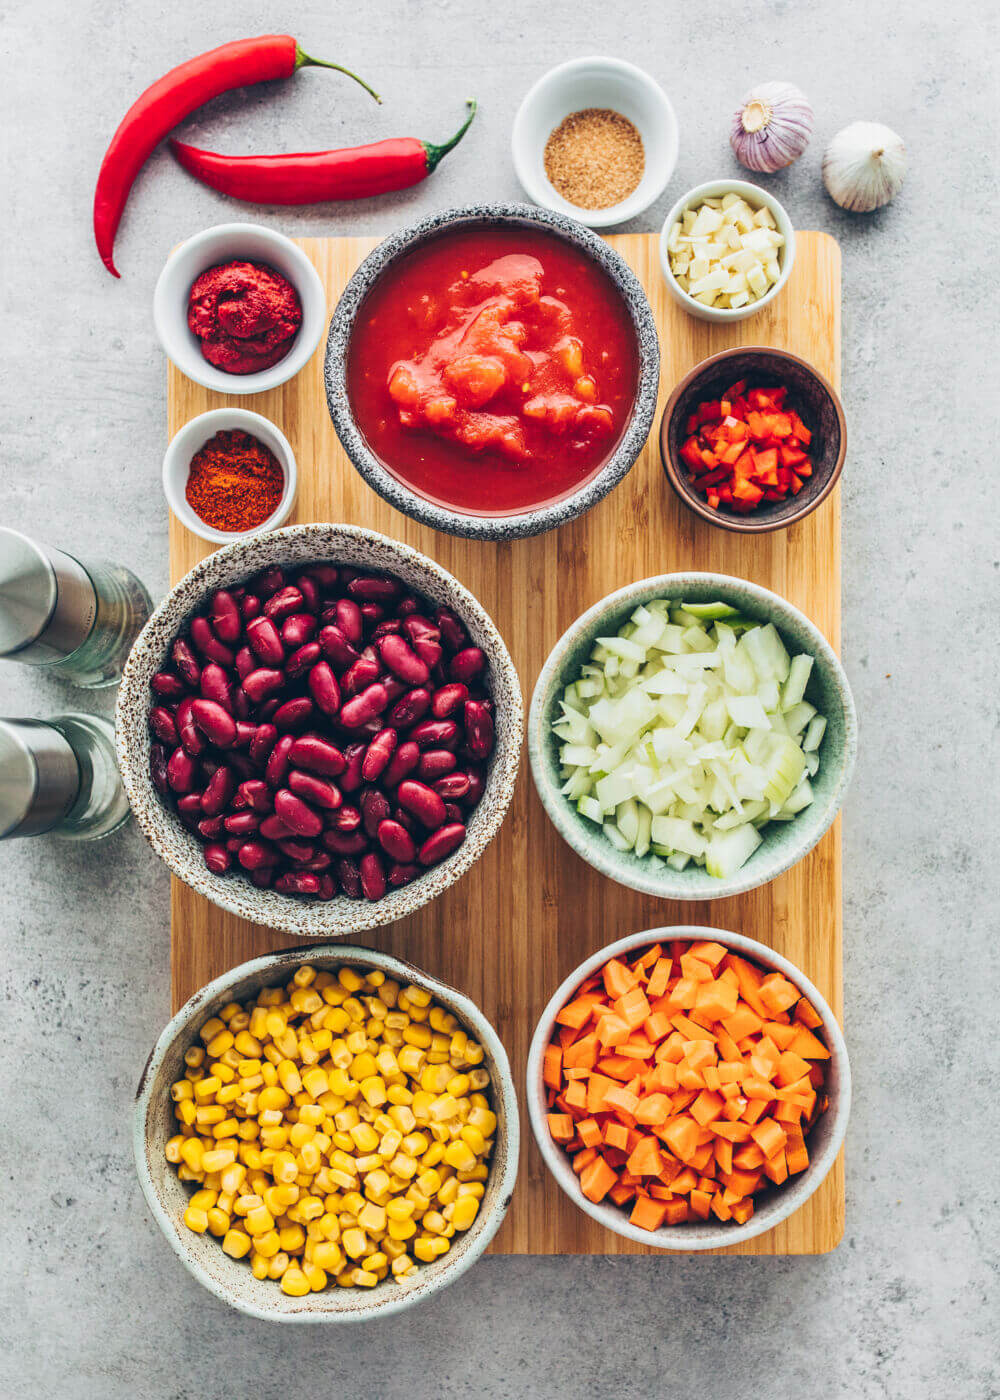 Ingredients for Vegan Chili Sin Carne: kidney beans, corn, tomatoes, carrots, onions, garlic, spices